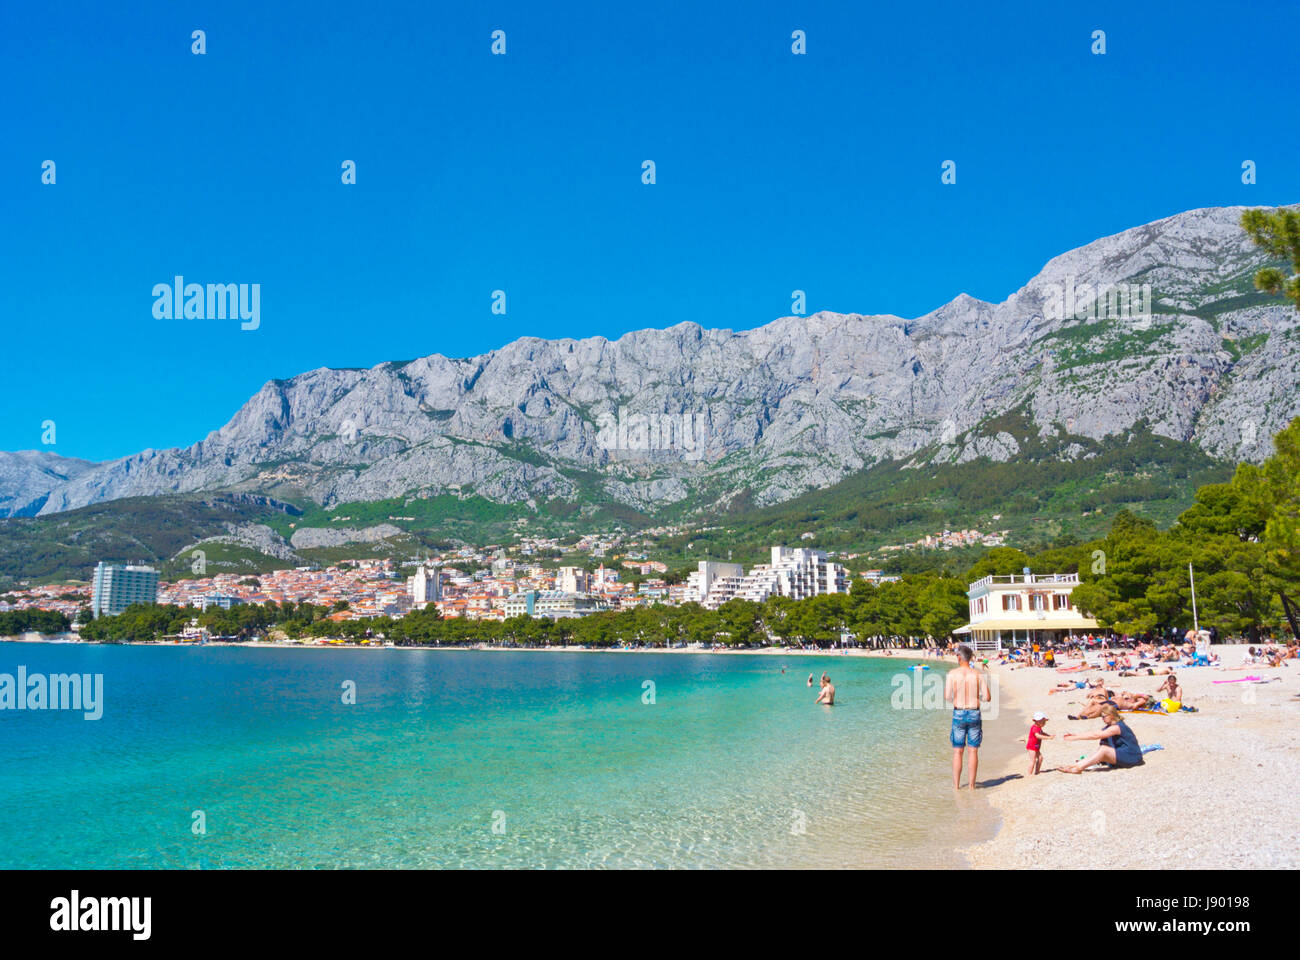 Plaza Donja Luka, the main beach, Makarska, Dalmatia, Croatia - Stock Image